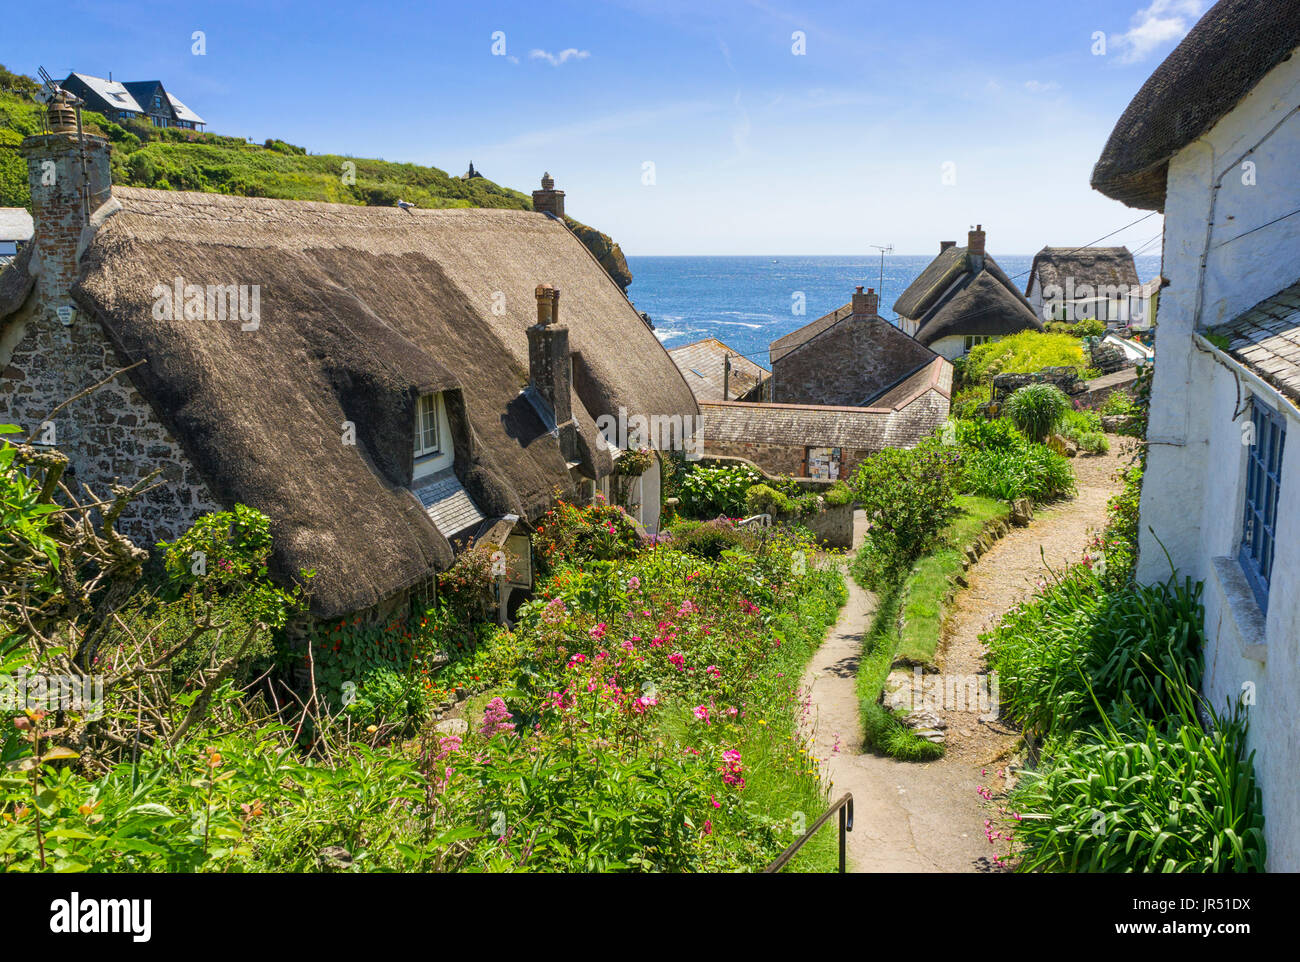 Thatched roof on a thatched cottage at Cadgwith Cove, Lizard Peninsula, Cornwall, England, UK - Stock Image